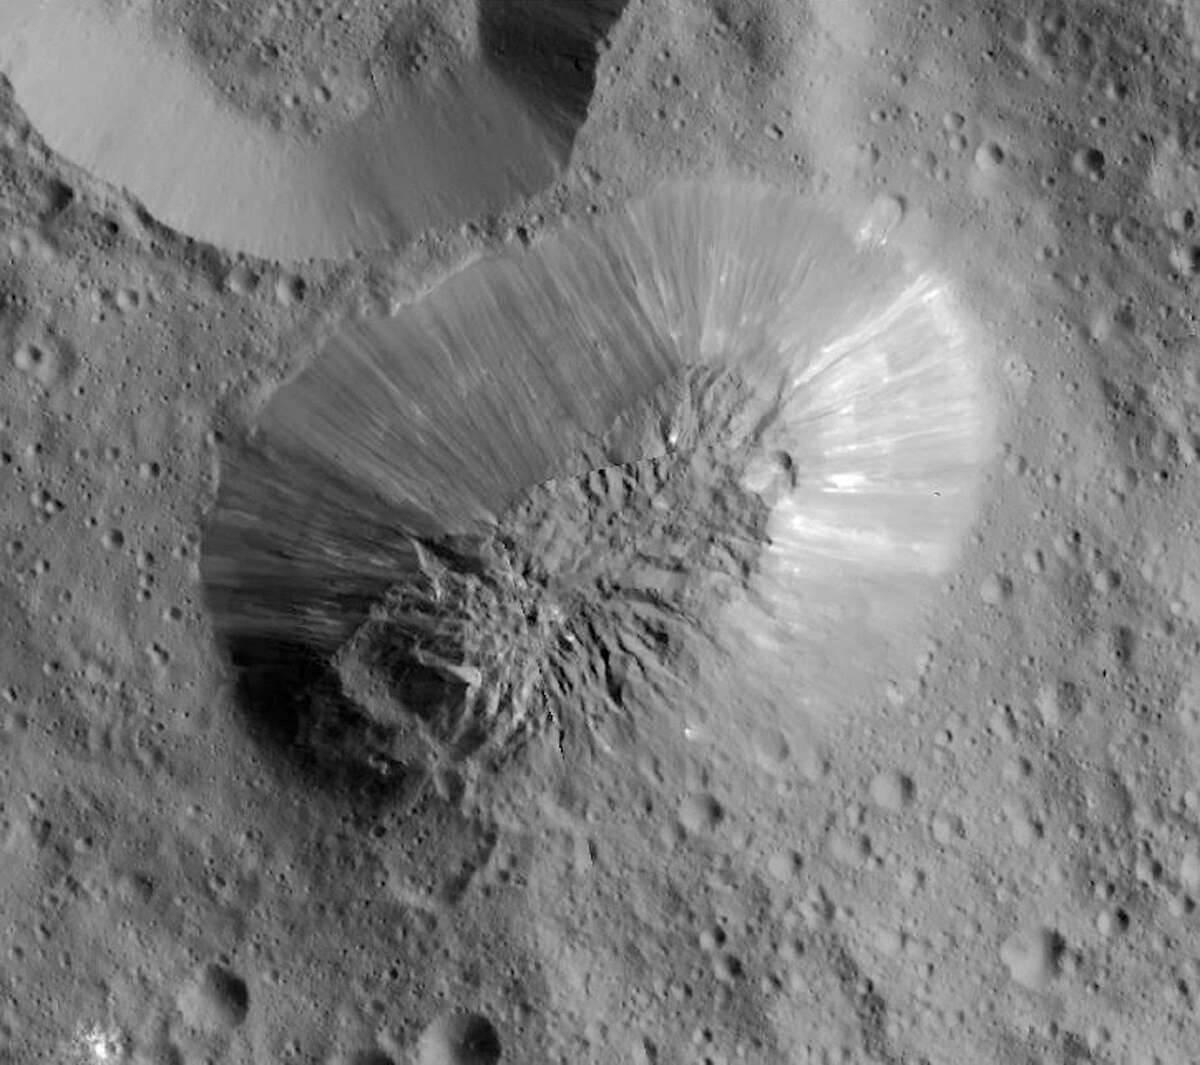 This image provided by NASA, shows an inactive volcano on the surface of Ceres, the largest object in the asteroid belt between Mars and Jupiter. Scientists said the volcano on the dwarf planet Ceres is about half as tall as Mount Everest. (NASA/JPL-Caltech/UCLA/MPS/DLR/IDA via AP)